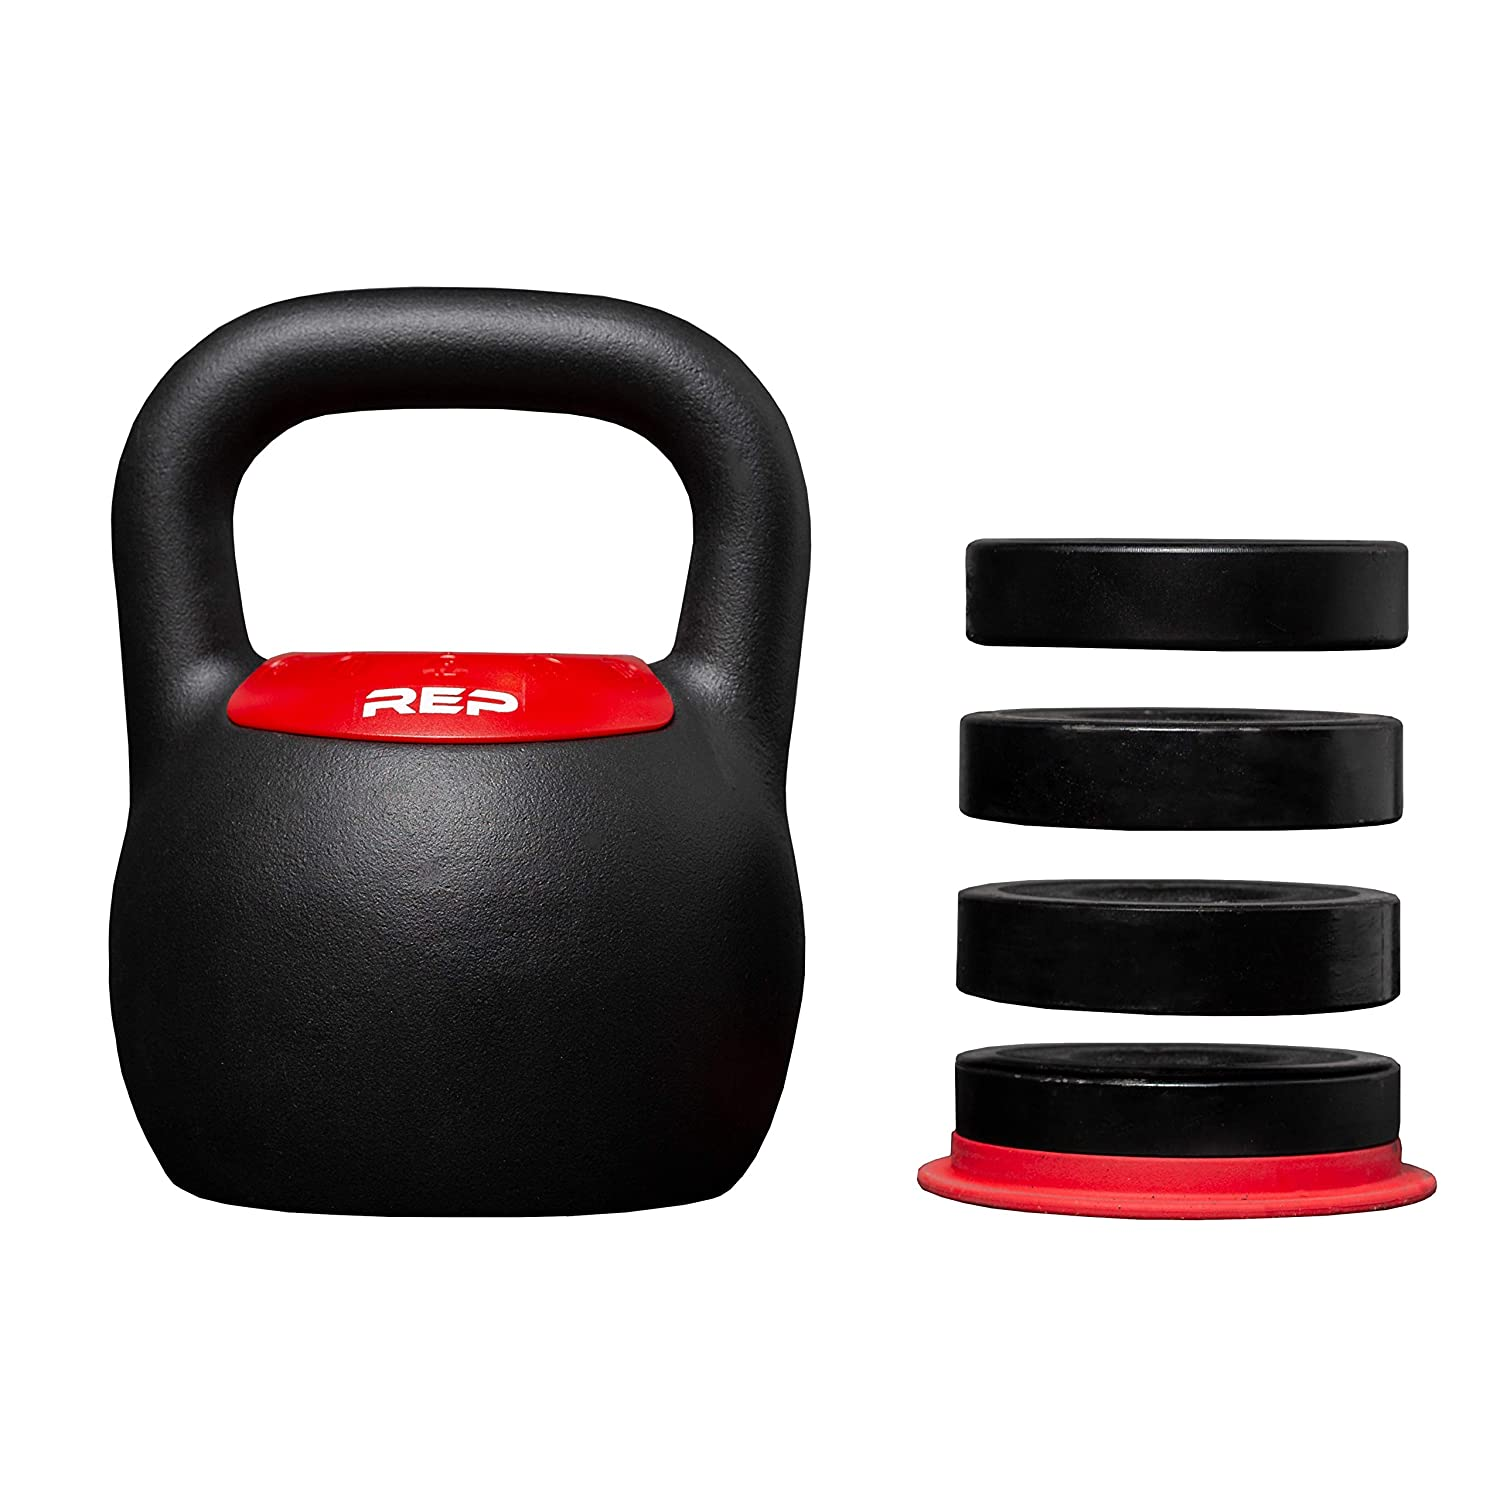 REP FITNESS Adjustable Kettlebell with Matte Powder Coating Quickly Select from Multiple KG or LB Weight Options for HIIT and Cross Training Workouts